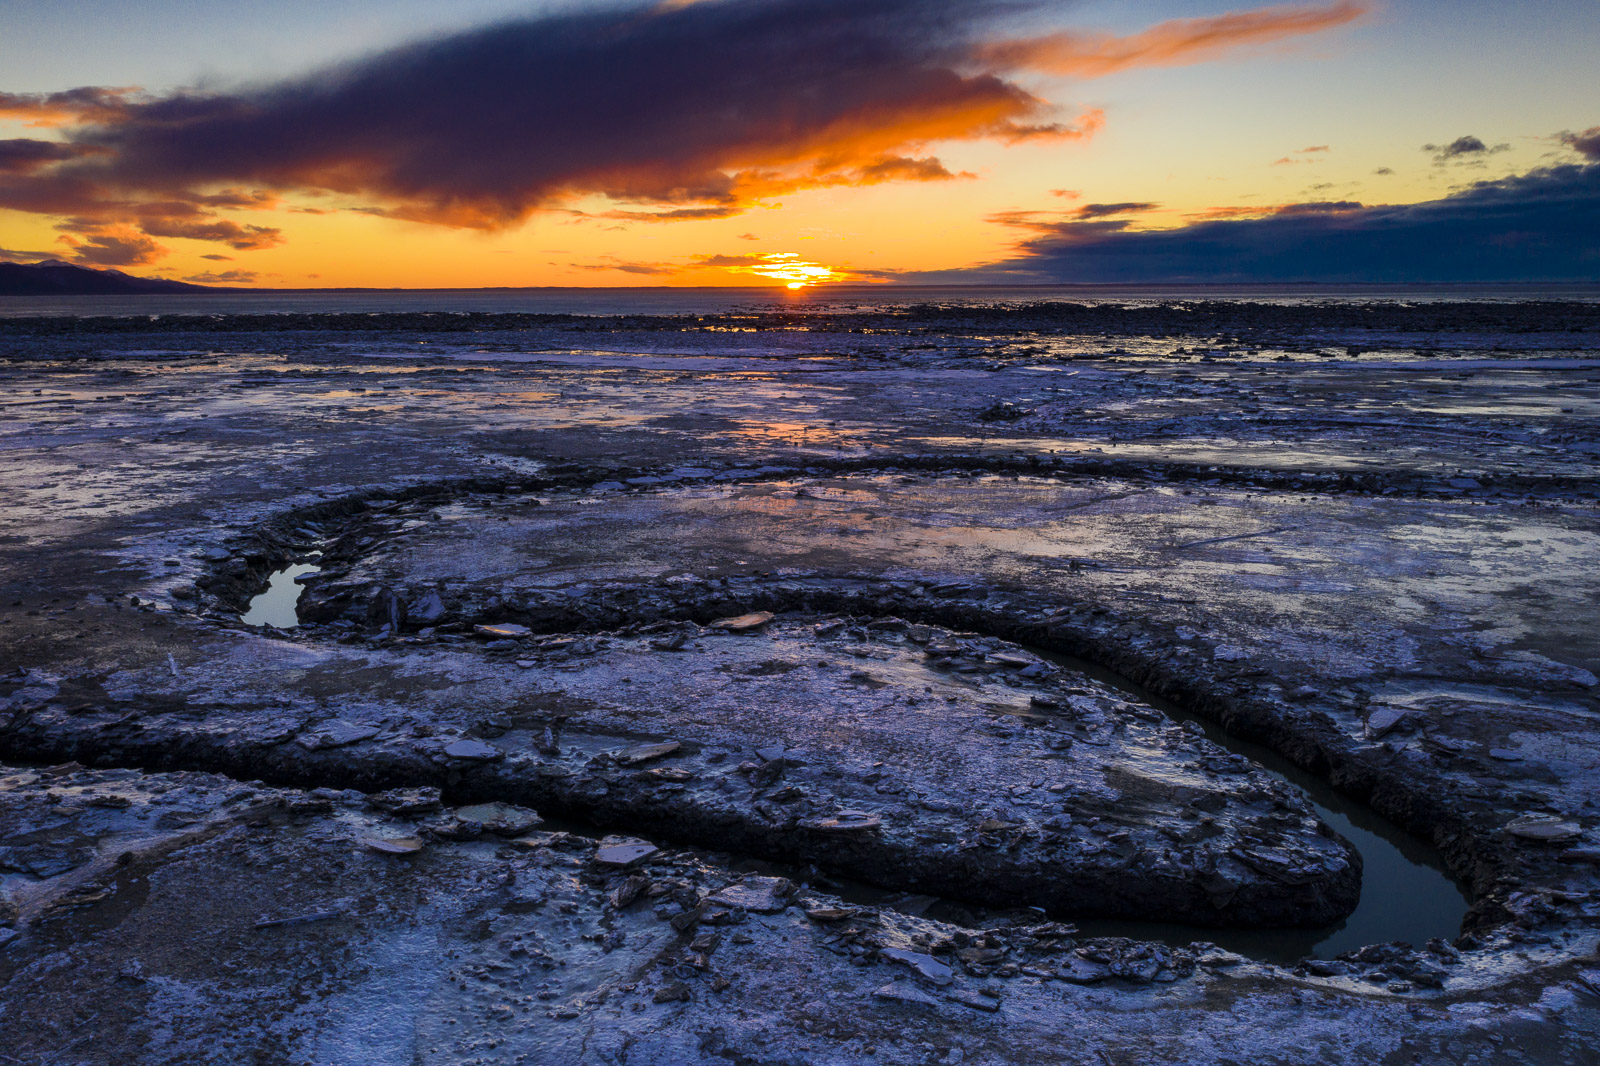 The Rabbit Creek outflow cuts its way through the mudflats of the Anchorage Coastal Wildlife Refuge at low tide.